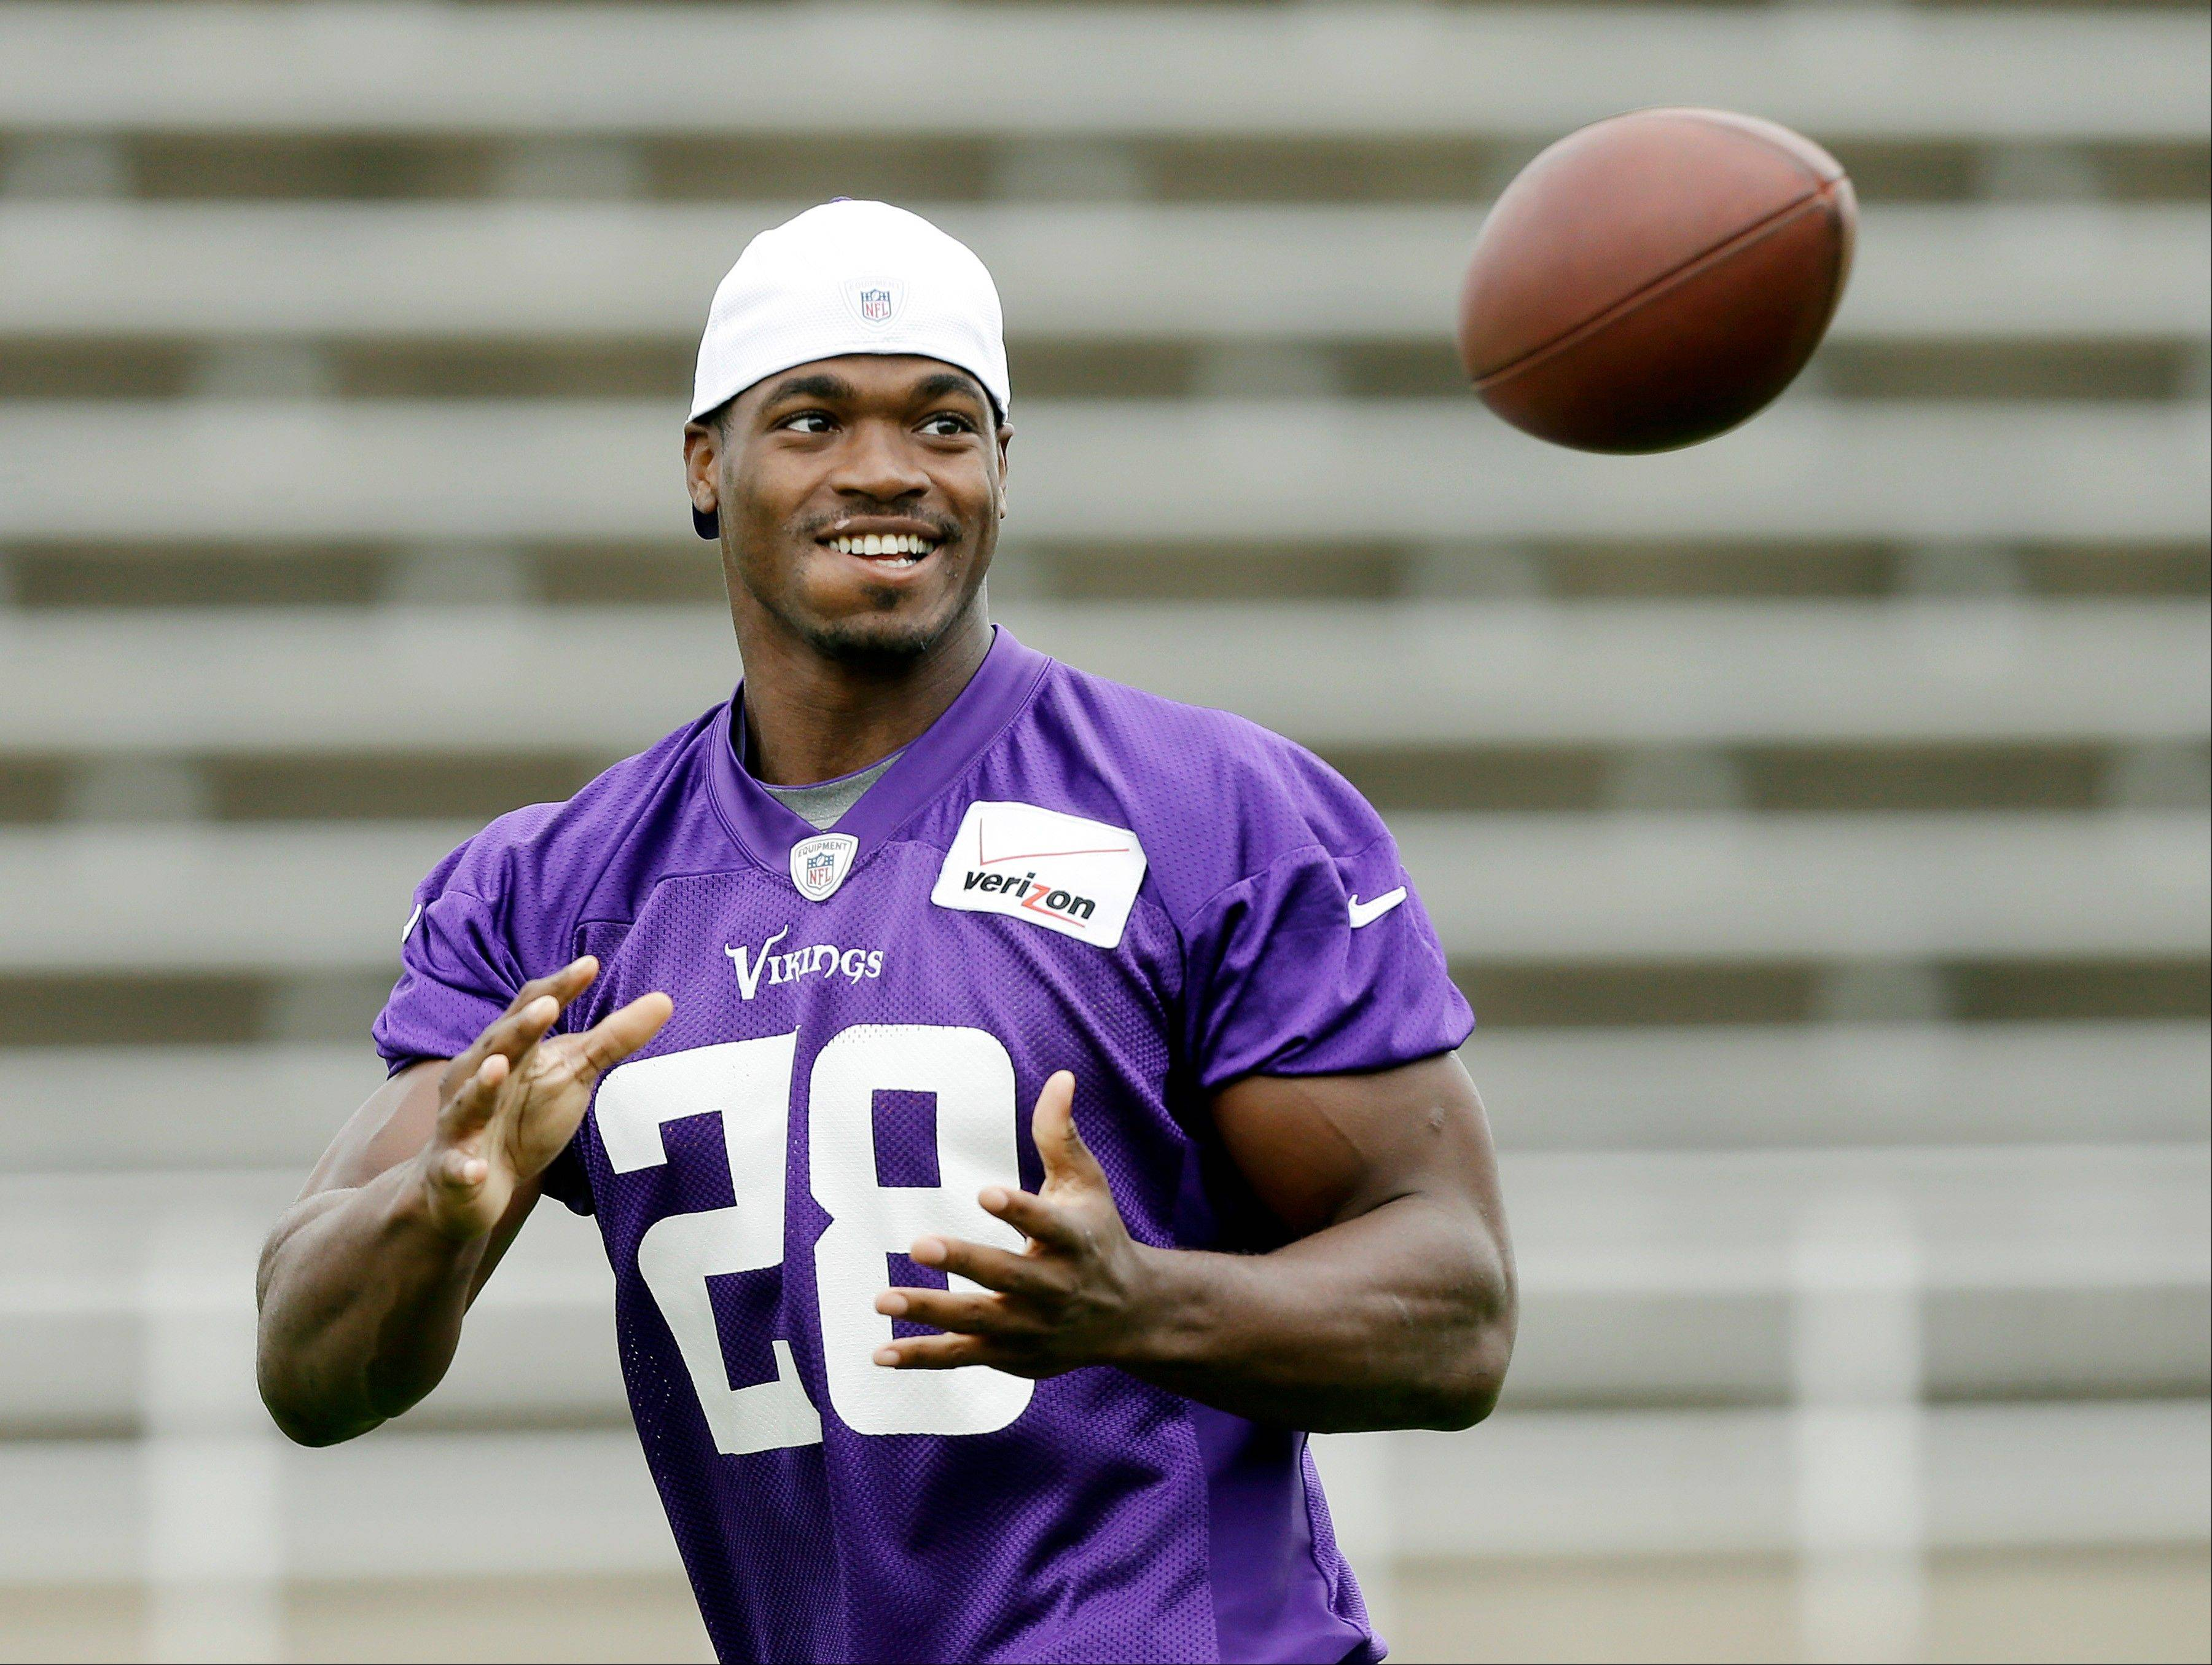 Minnesota Vikings running back Adrian Peterson, here catching the ball during NFL training camp Friday in Mankato, Minn., says he is eager for the league to approve testing for human growth hormone.